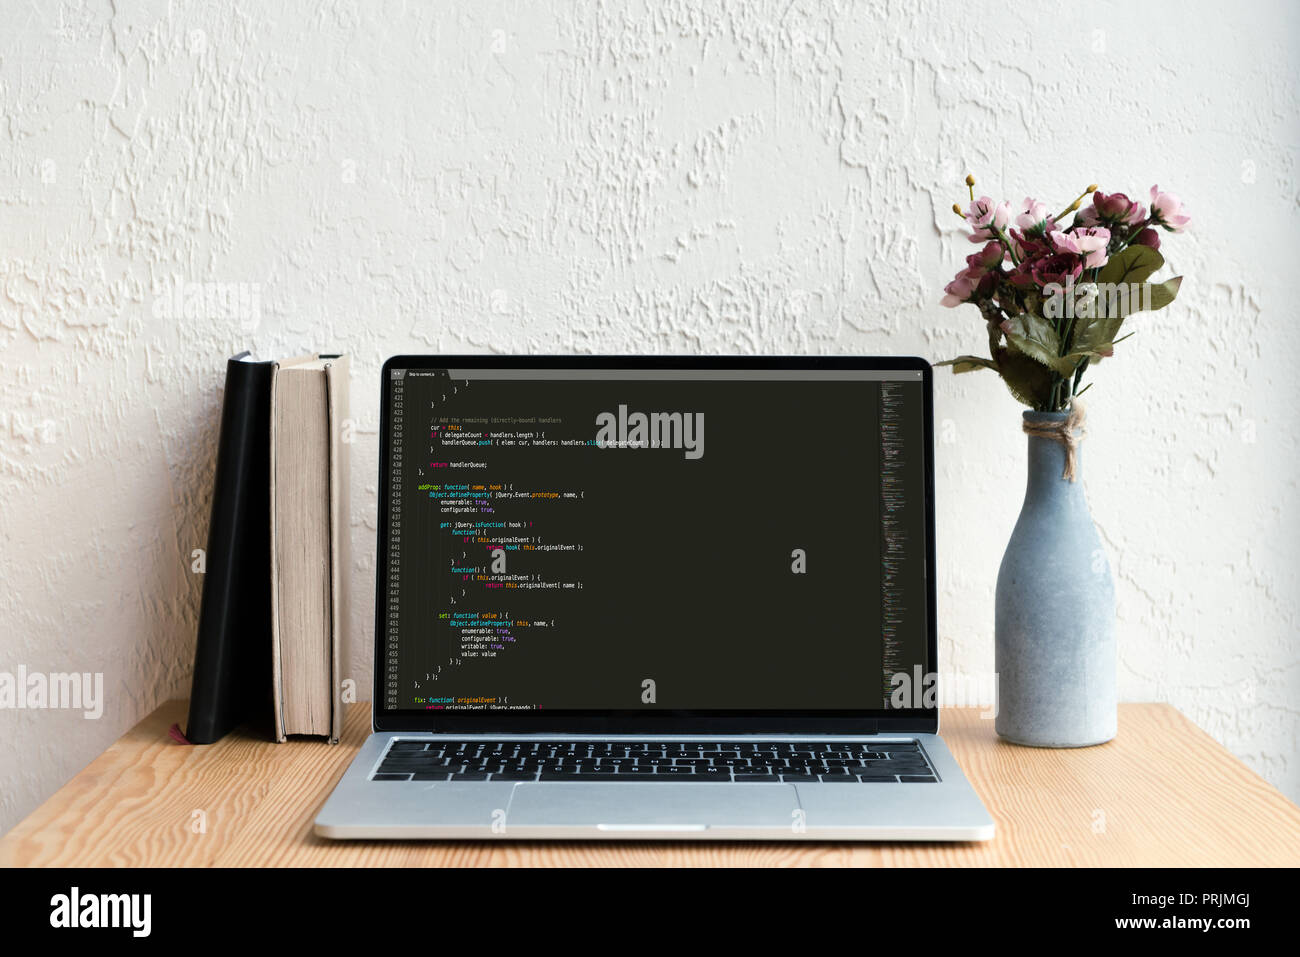 laptop with html code on screen, books and flowers in vase on wooden